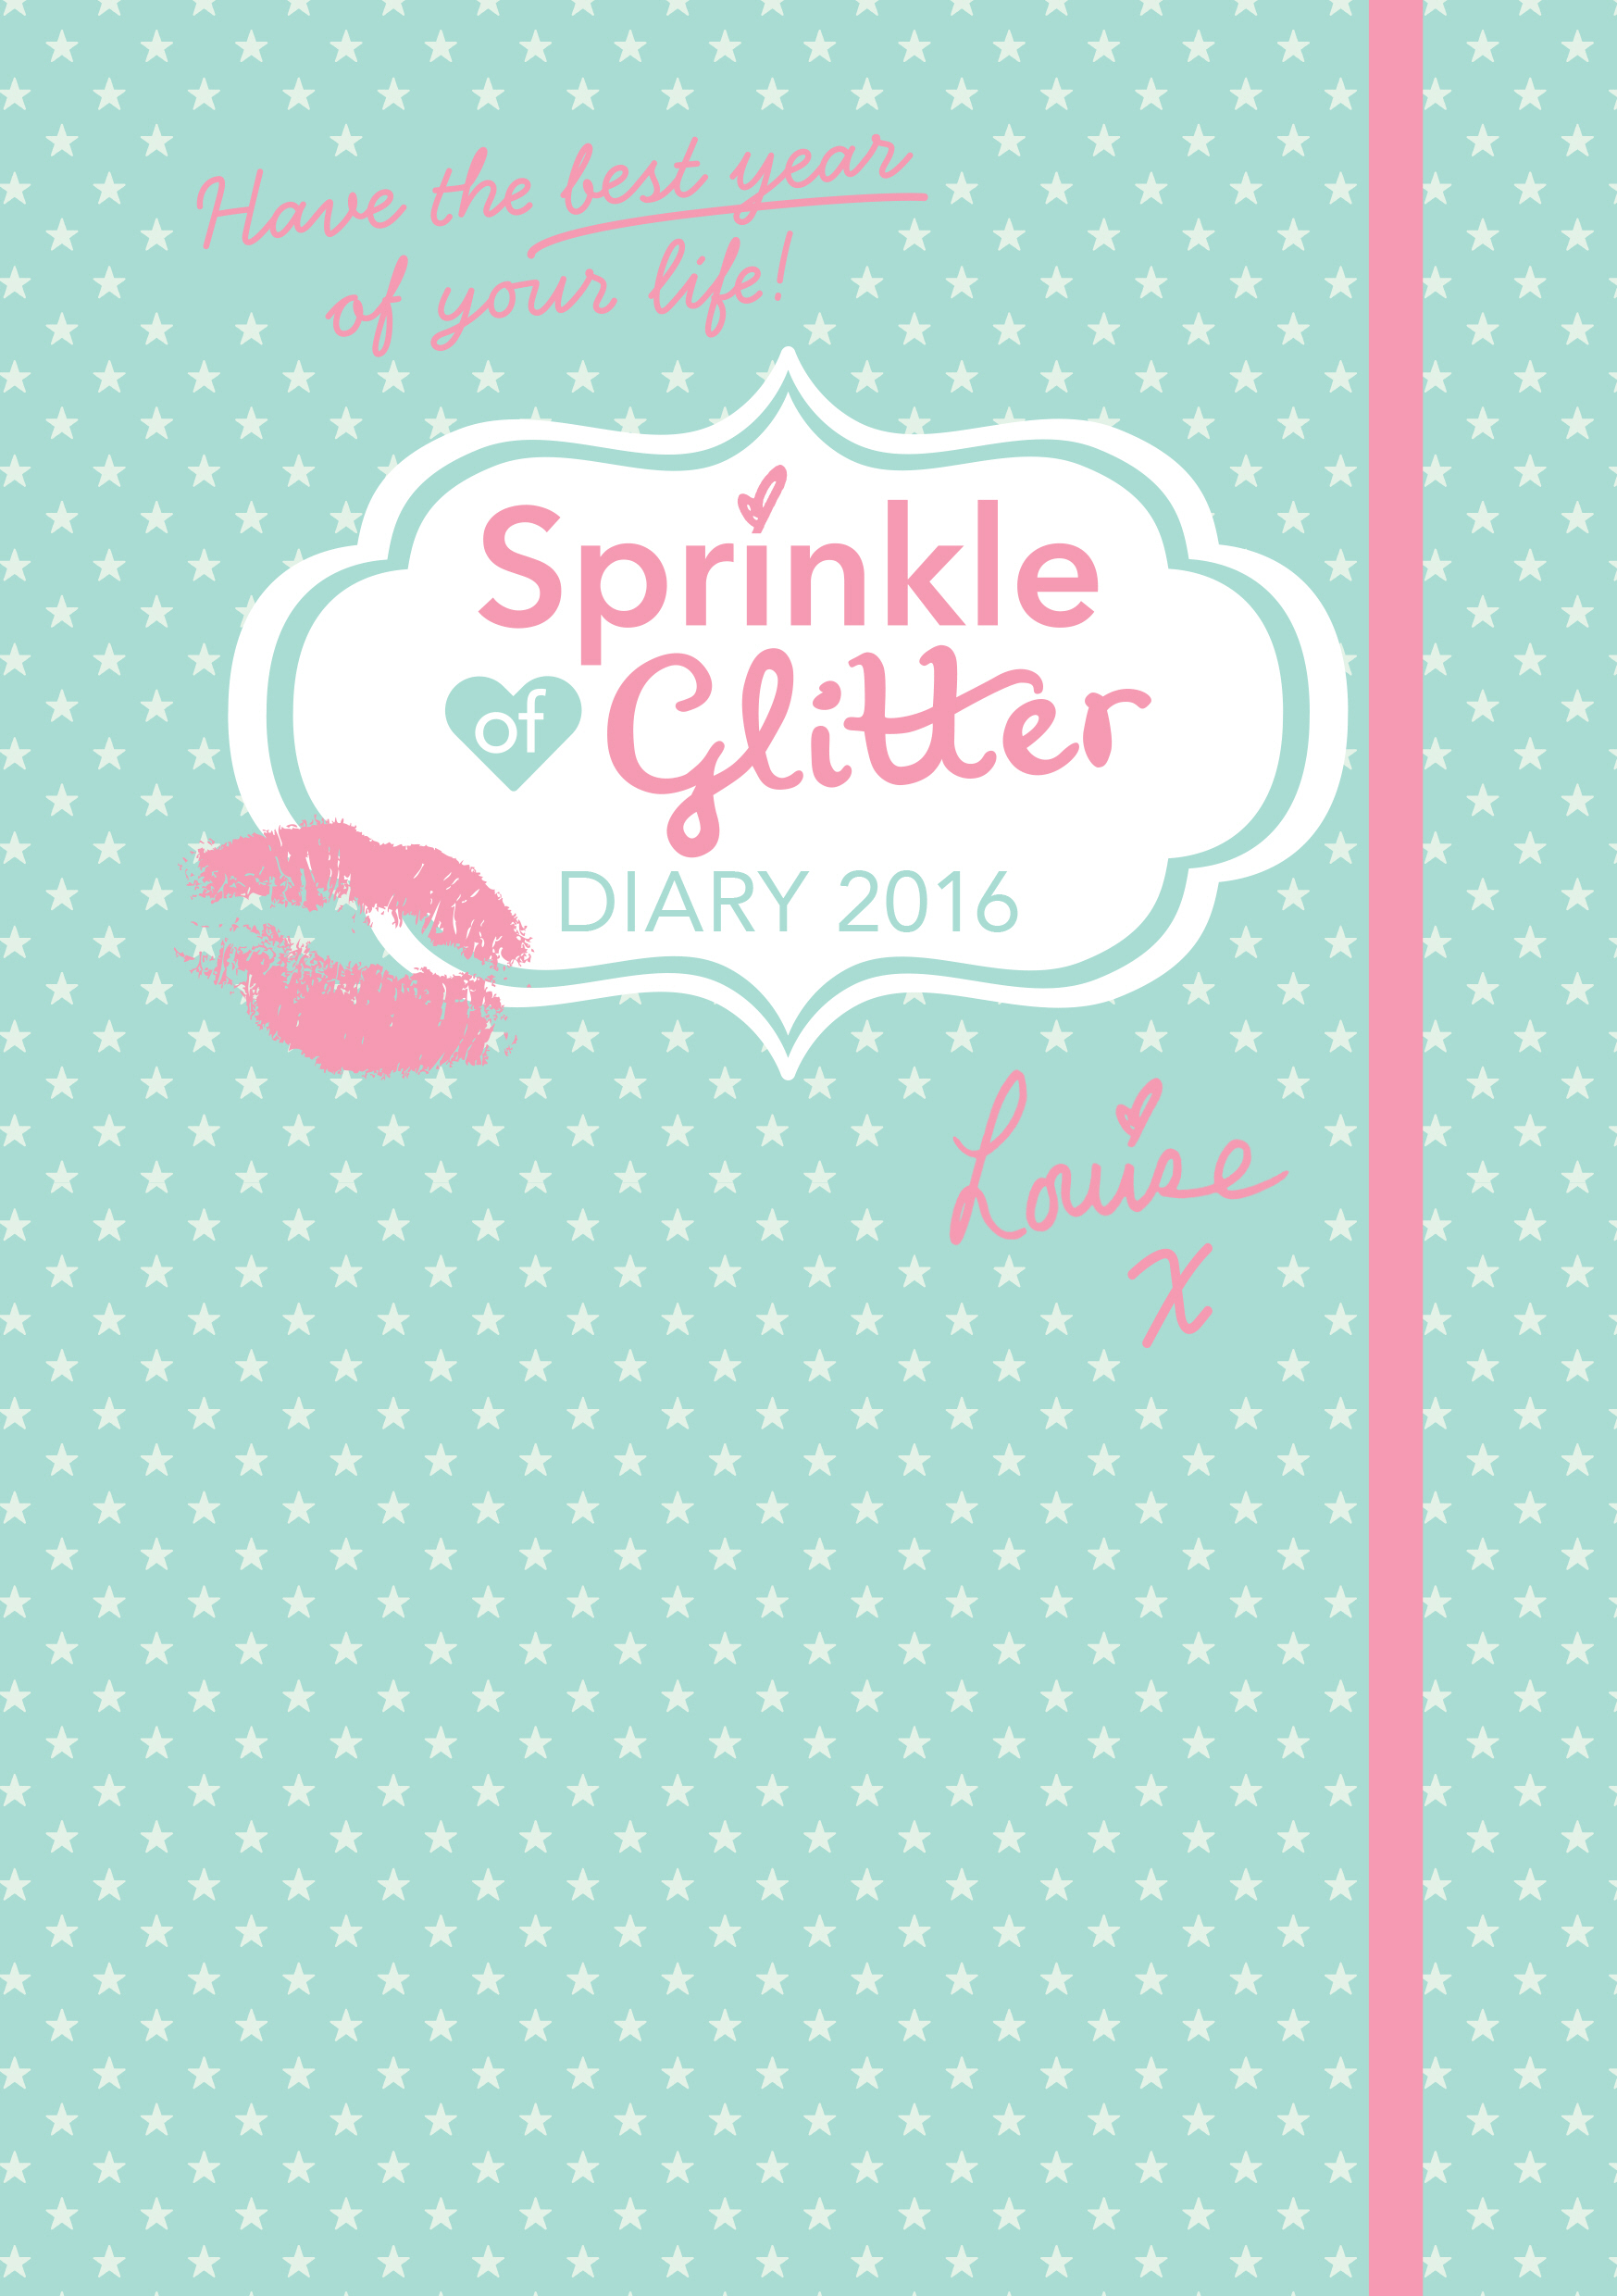 Sprinkle of Glitter: Diary 2016 a5 365 planner notebook daily happy weekly monthly planner agenda organizer day plan notebooks journal diary stationery 2018